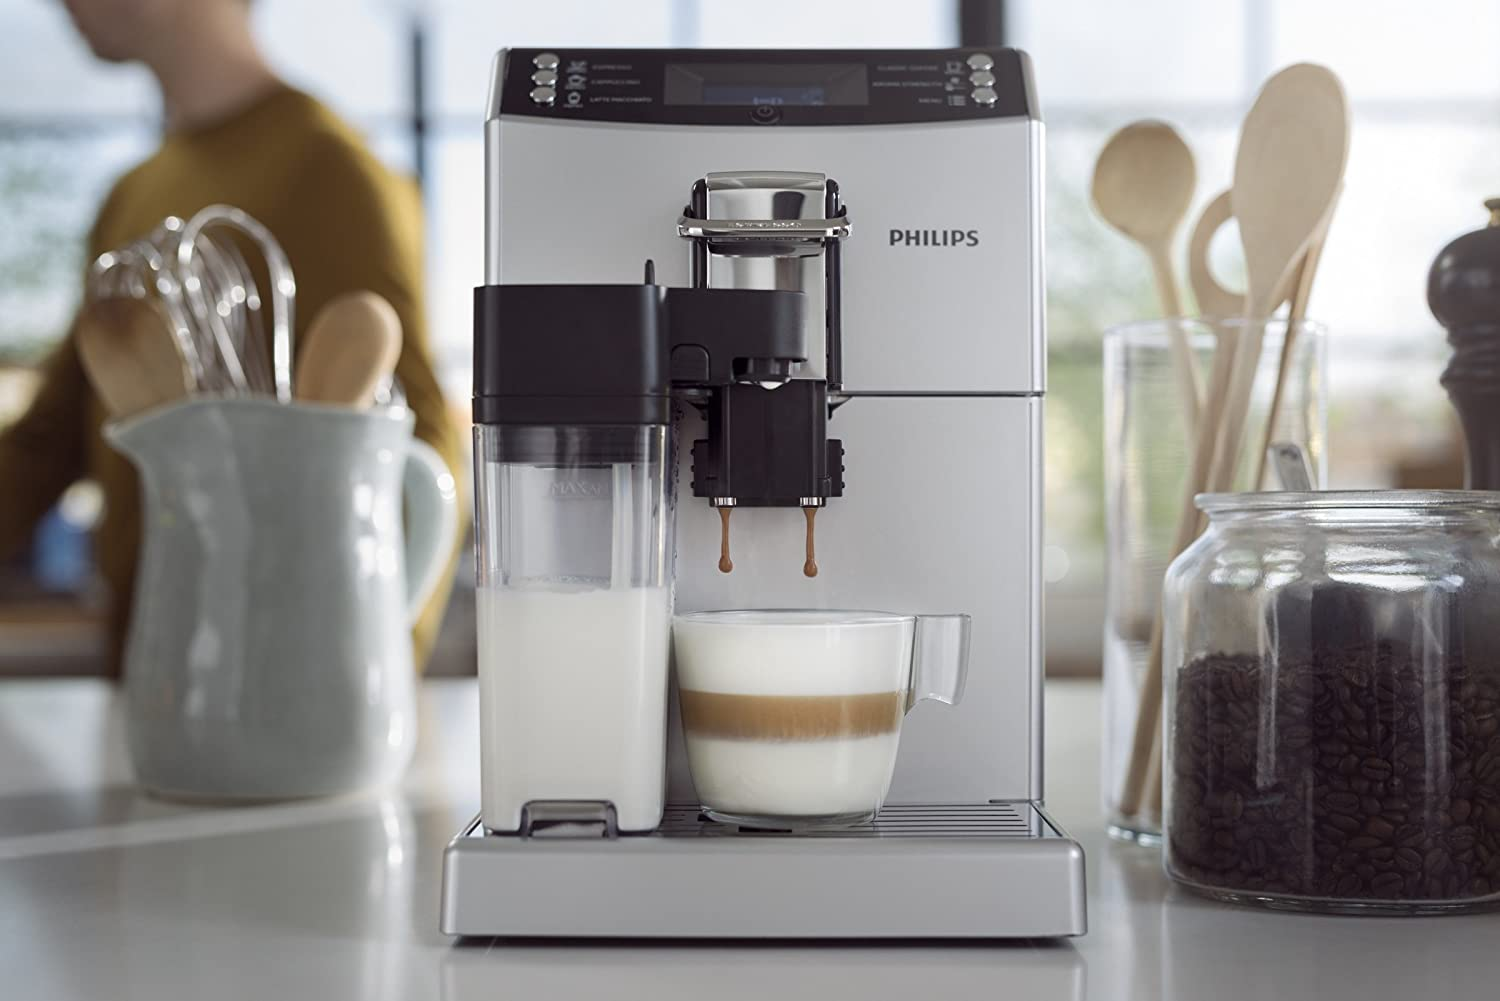 Philips 4000 series EP4050/10 - Cafetera (1,8 L, 7,2 g): Amazon.es: Hogar